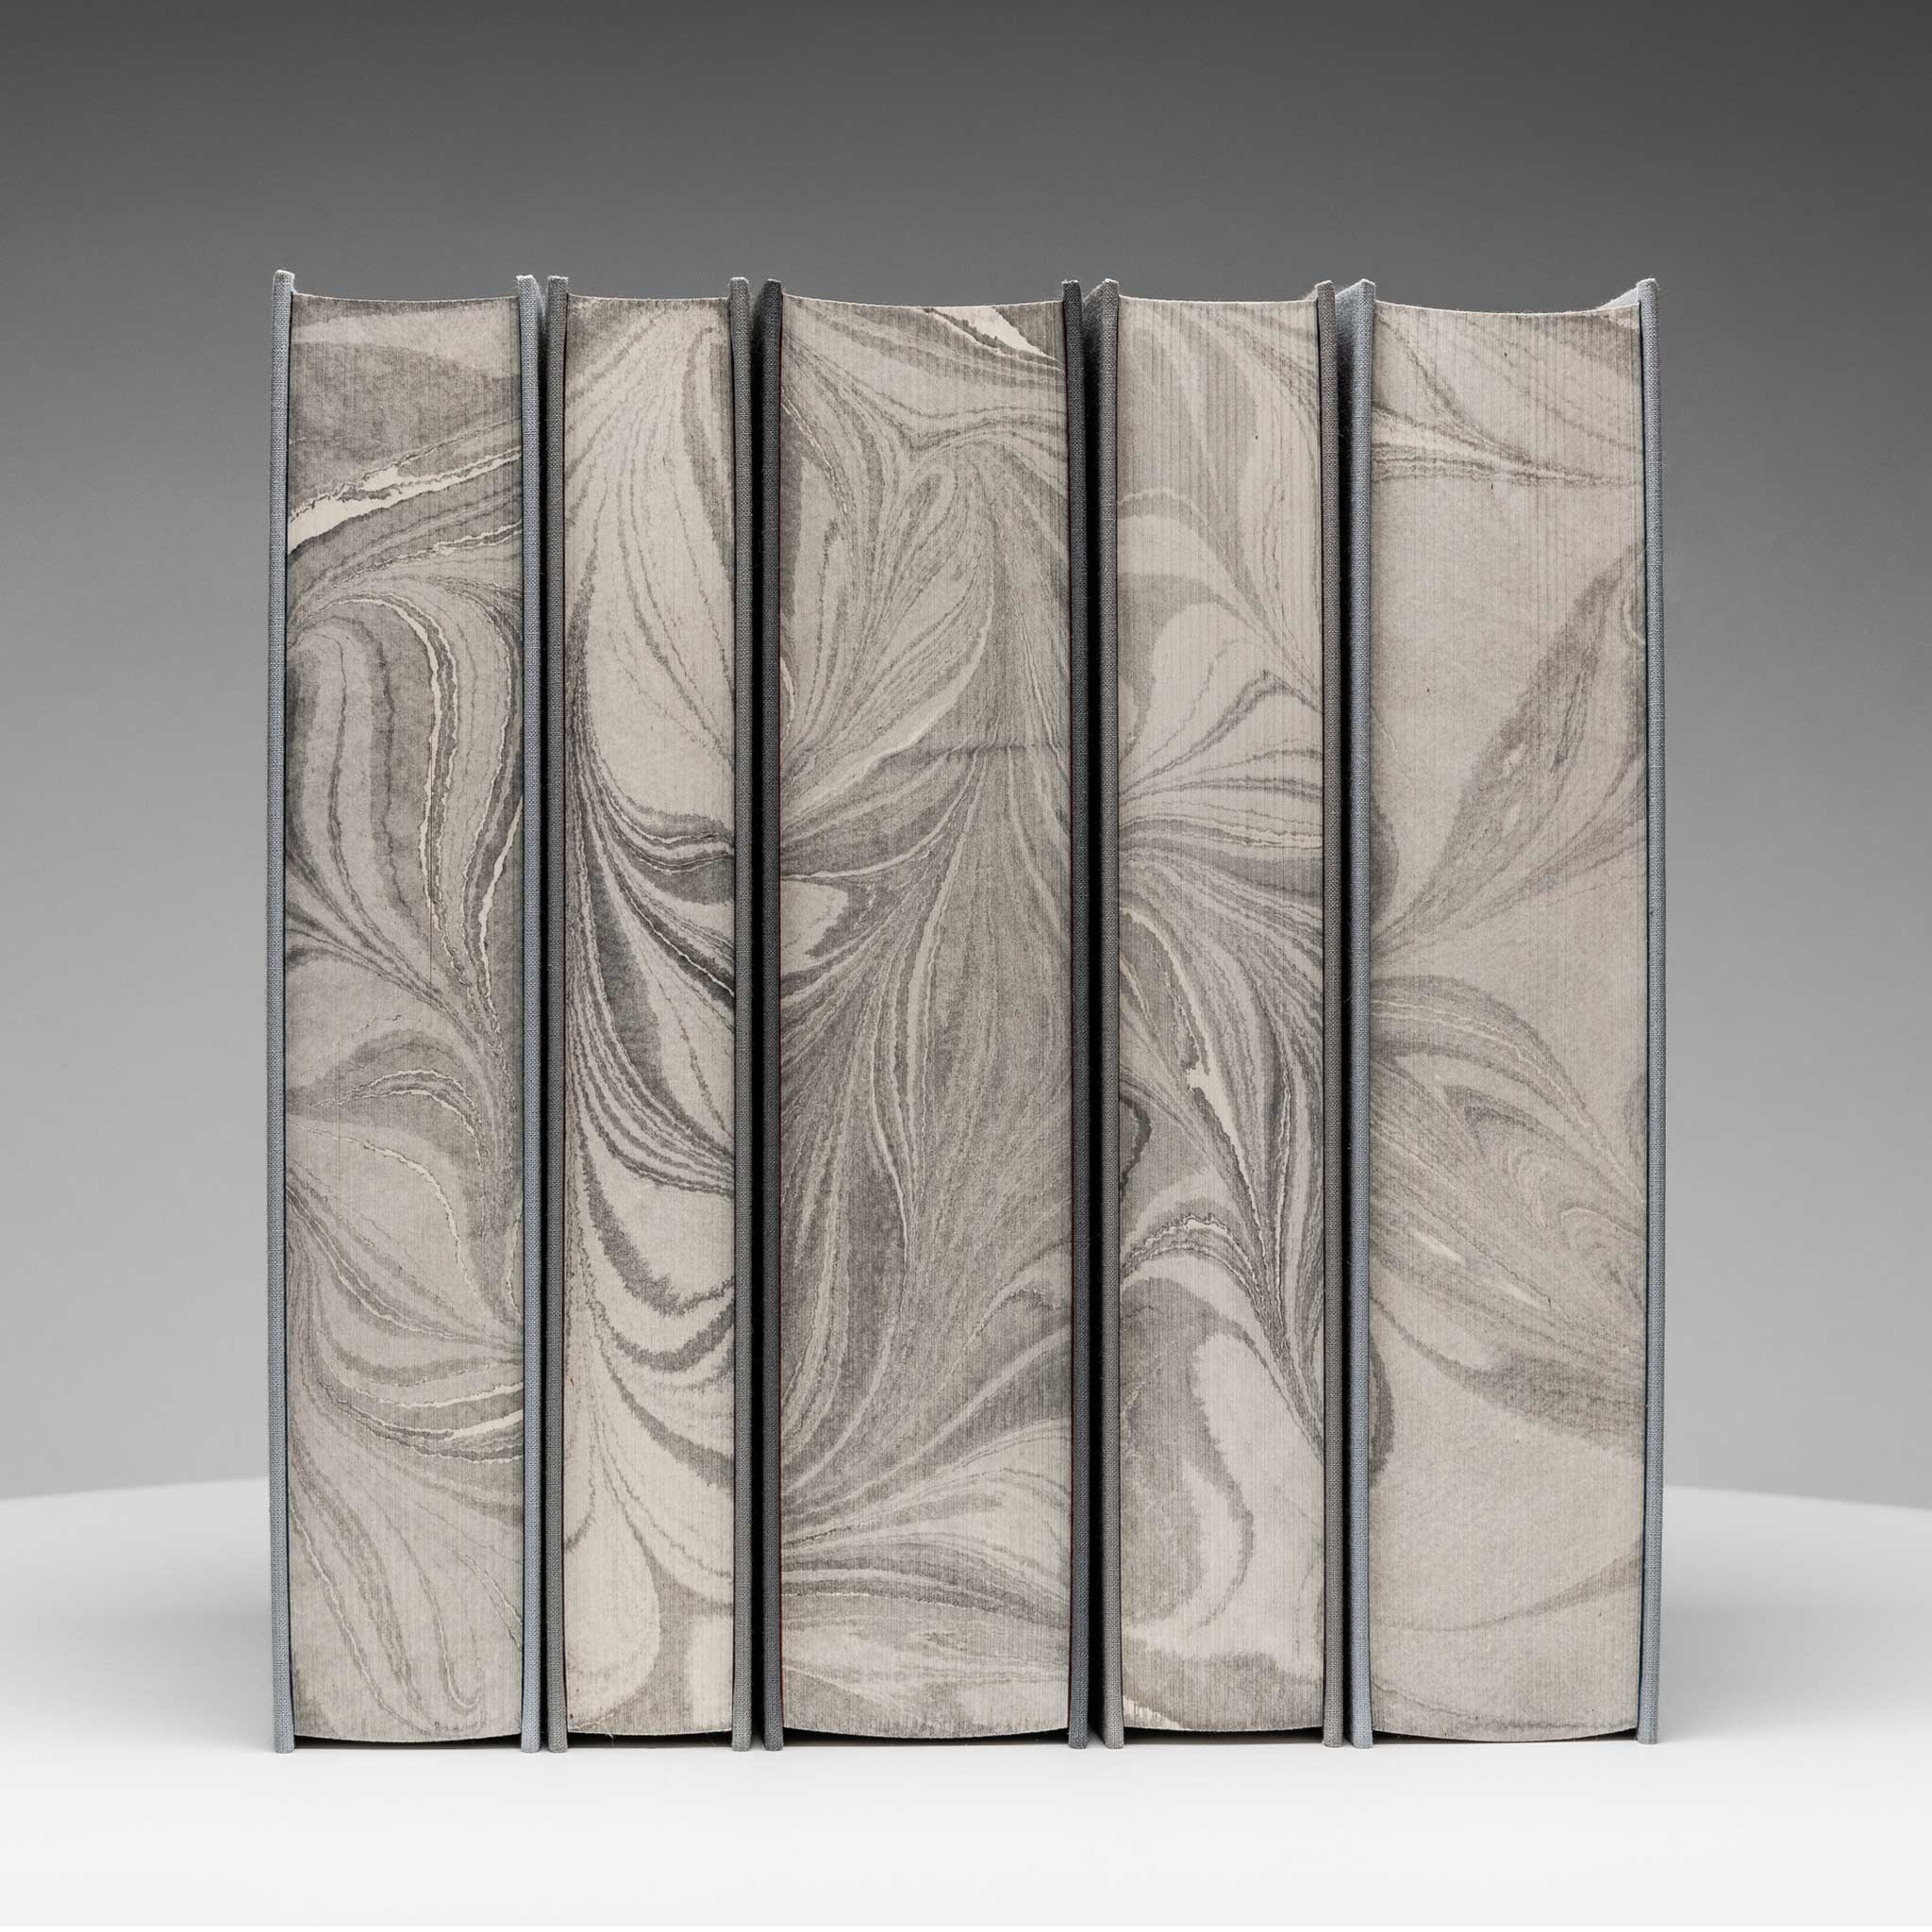 Limited Edition: Grayscale Covers with Marbled Edges